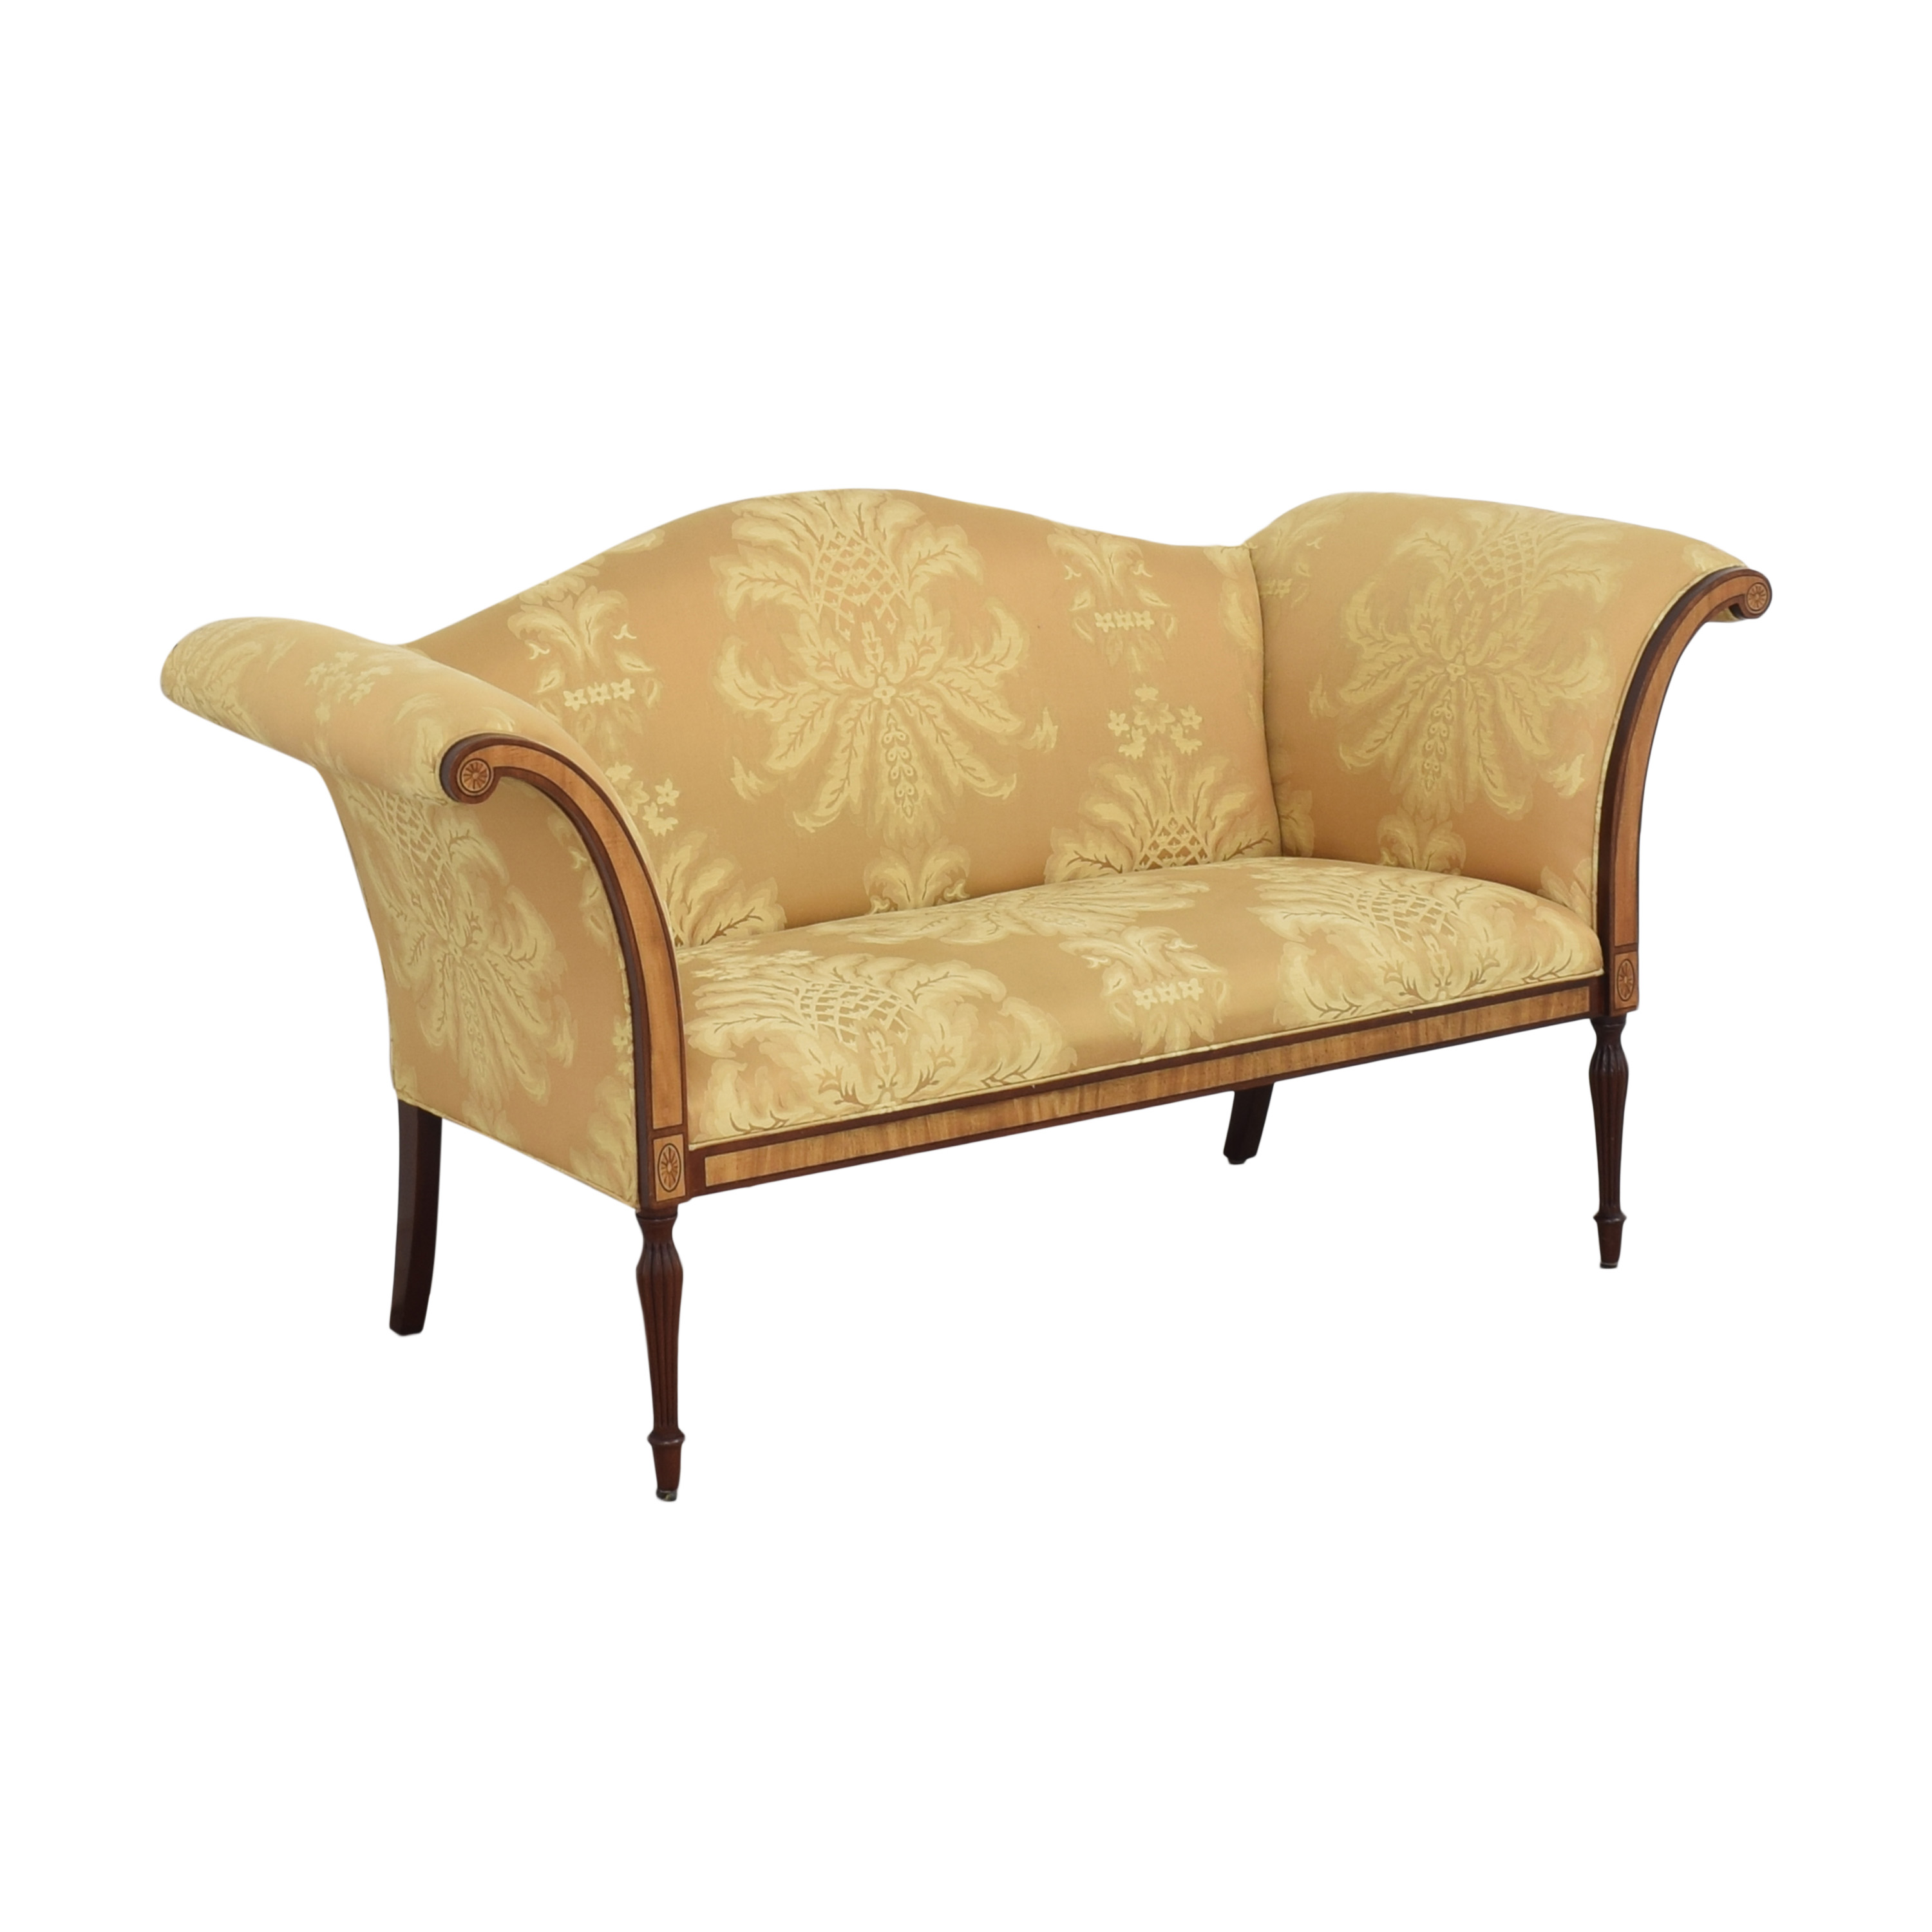 Southwood Southwood Loveseat with Pillows